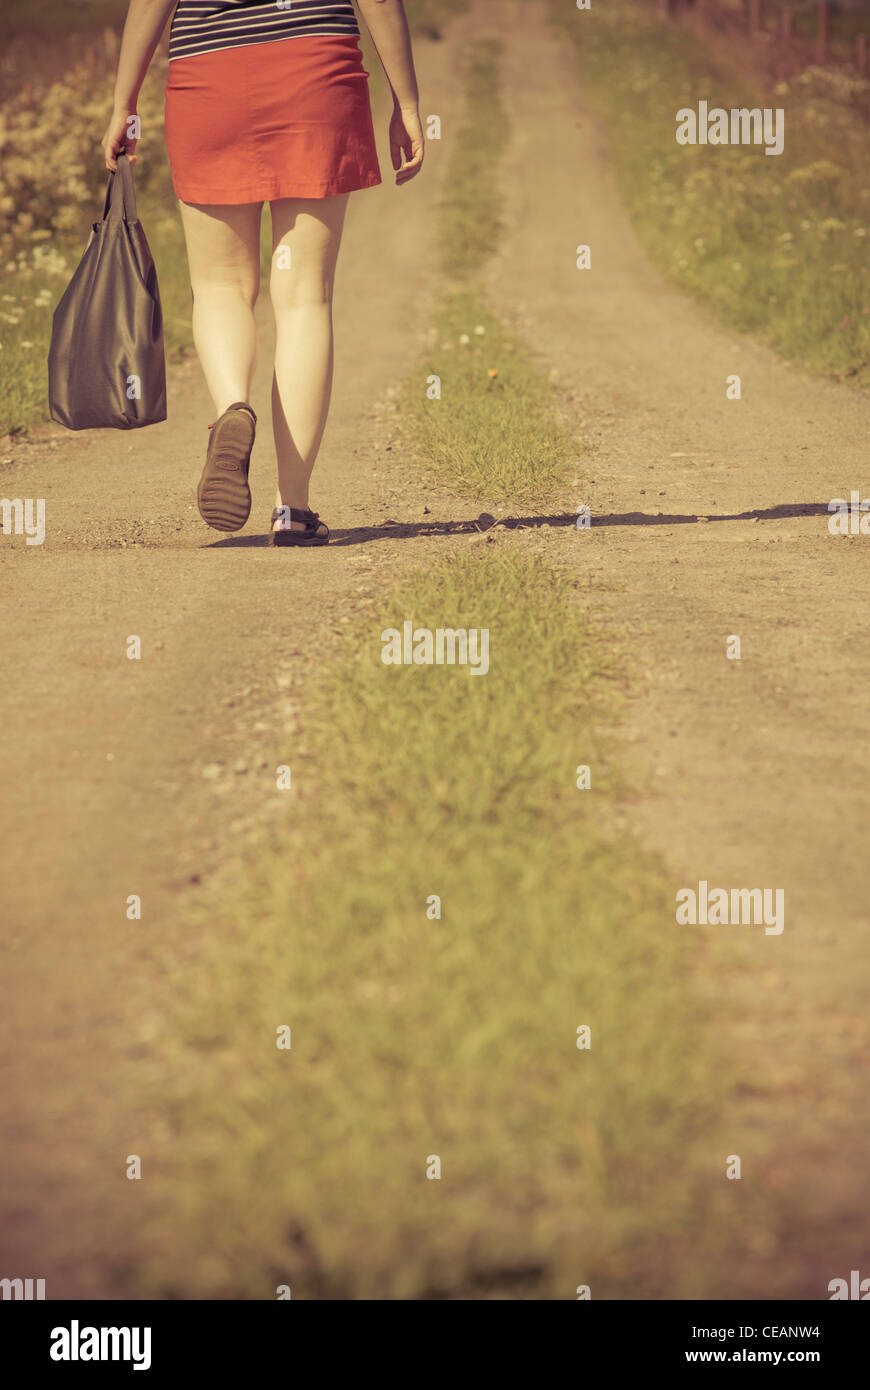 Woman walking on a dirt road - Stock Image